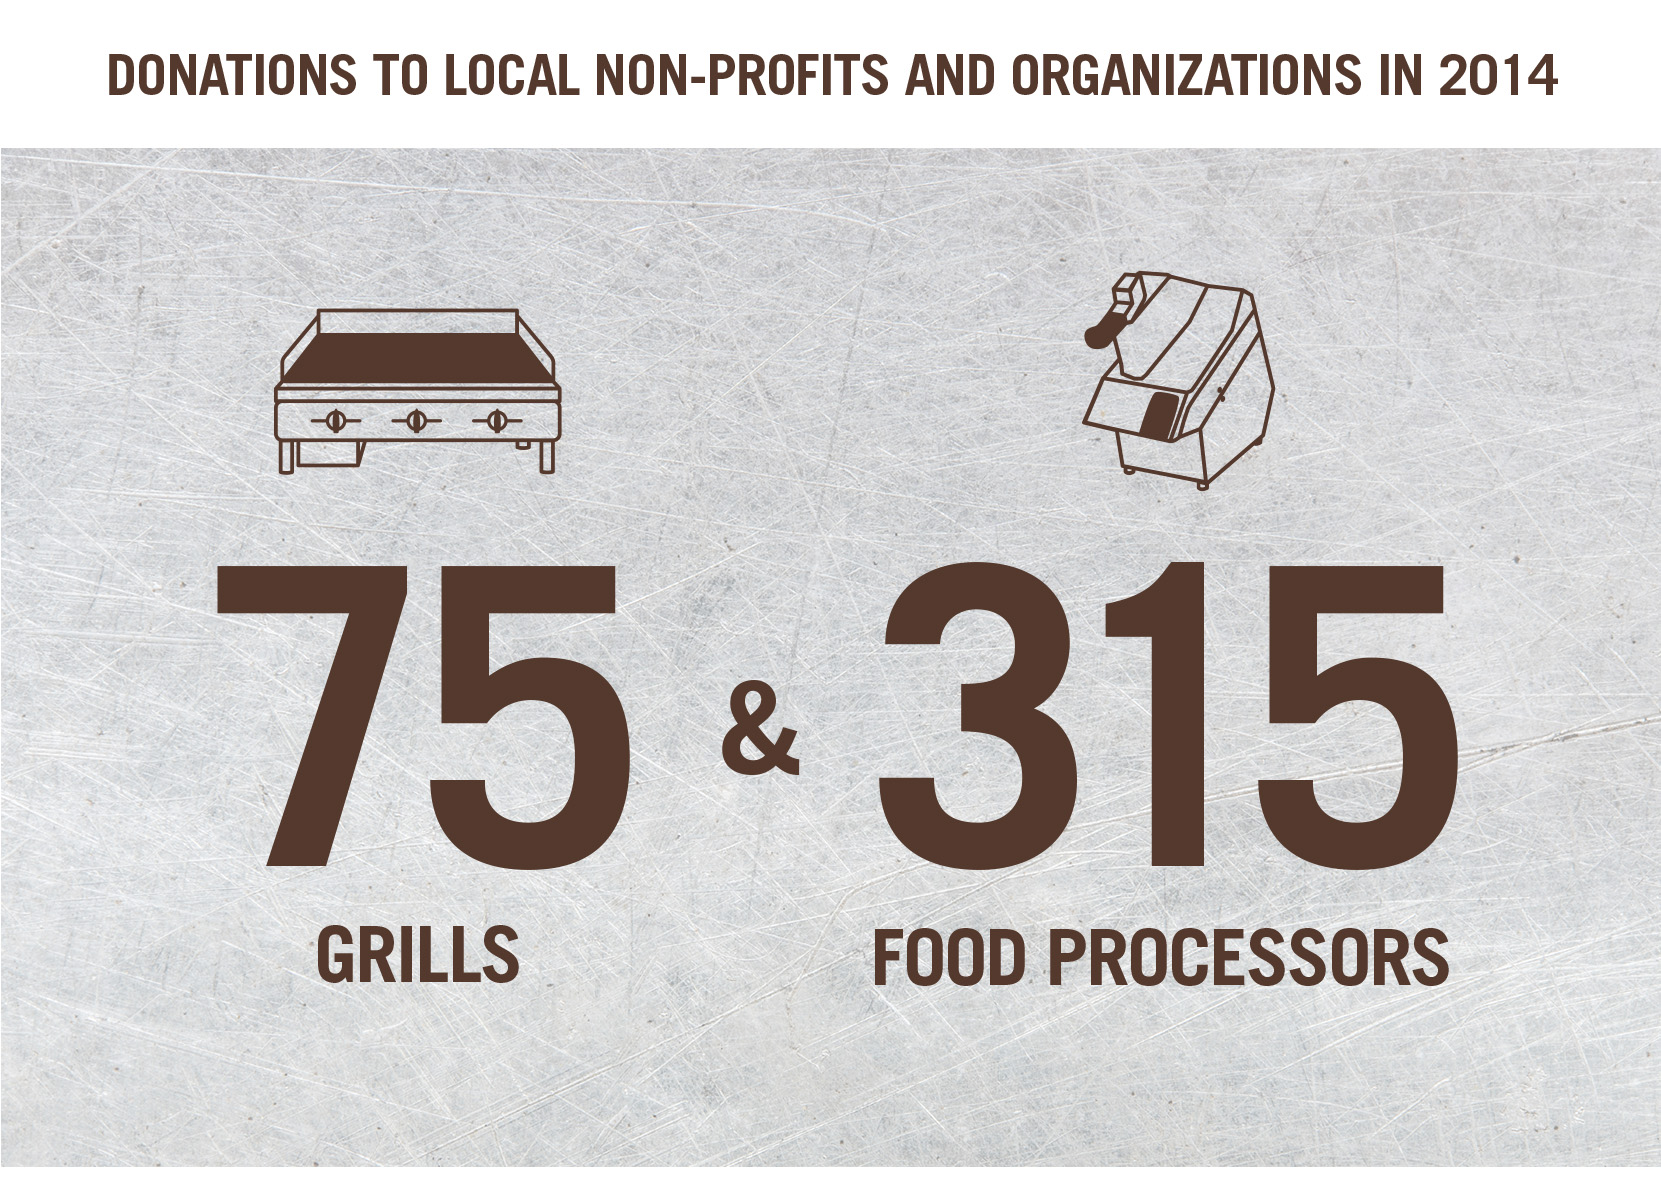 donations to local organizations and non profits in 2014 diagram:   75 grills & 315 food processors